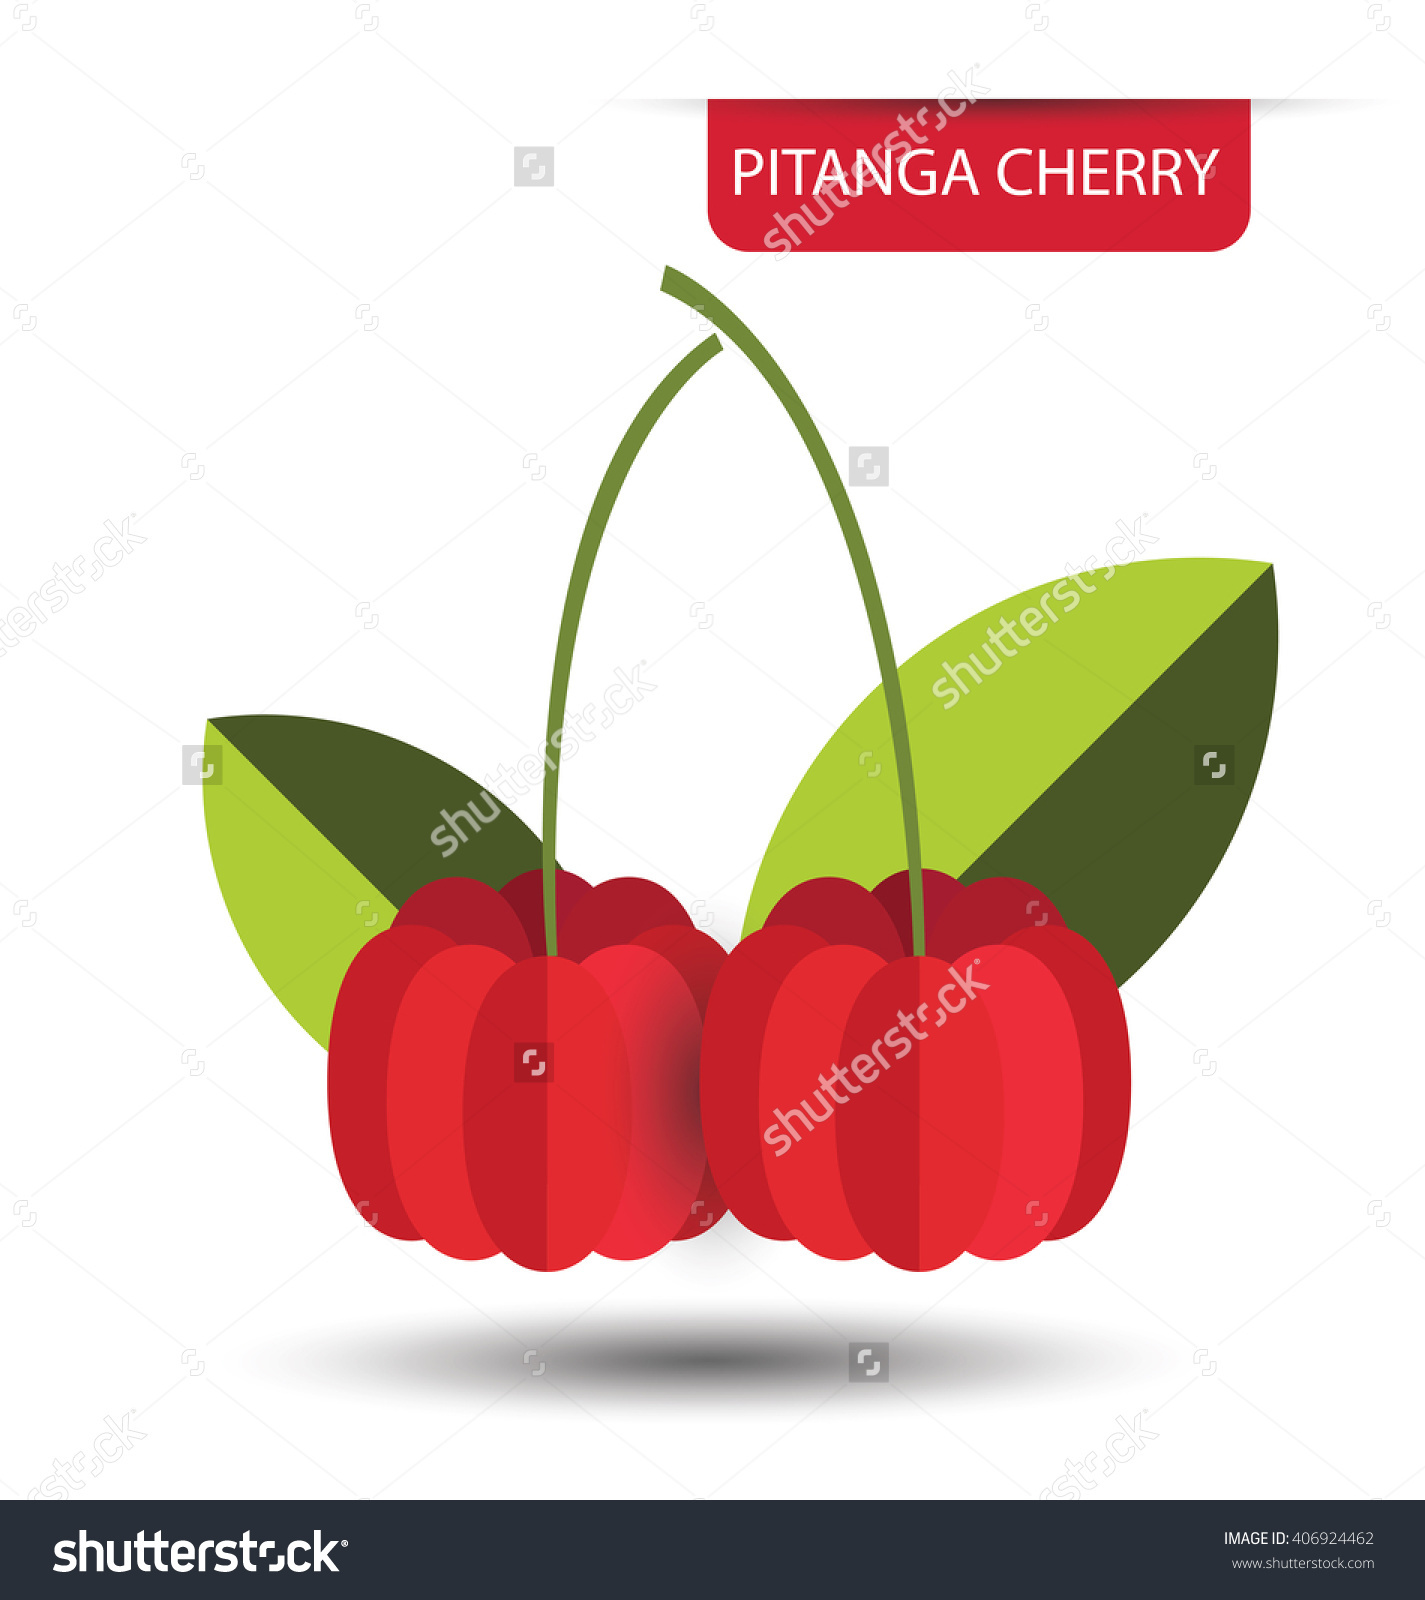 Pitanga Cherry Fruit Vector Illustration Stock Vector 406924462.